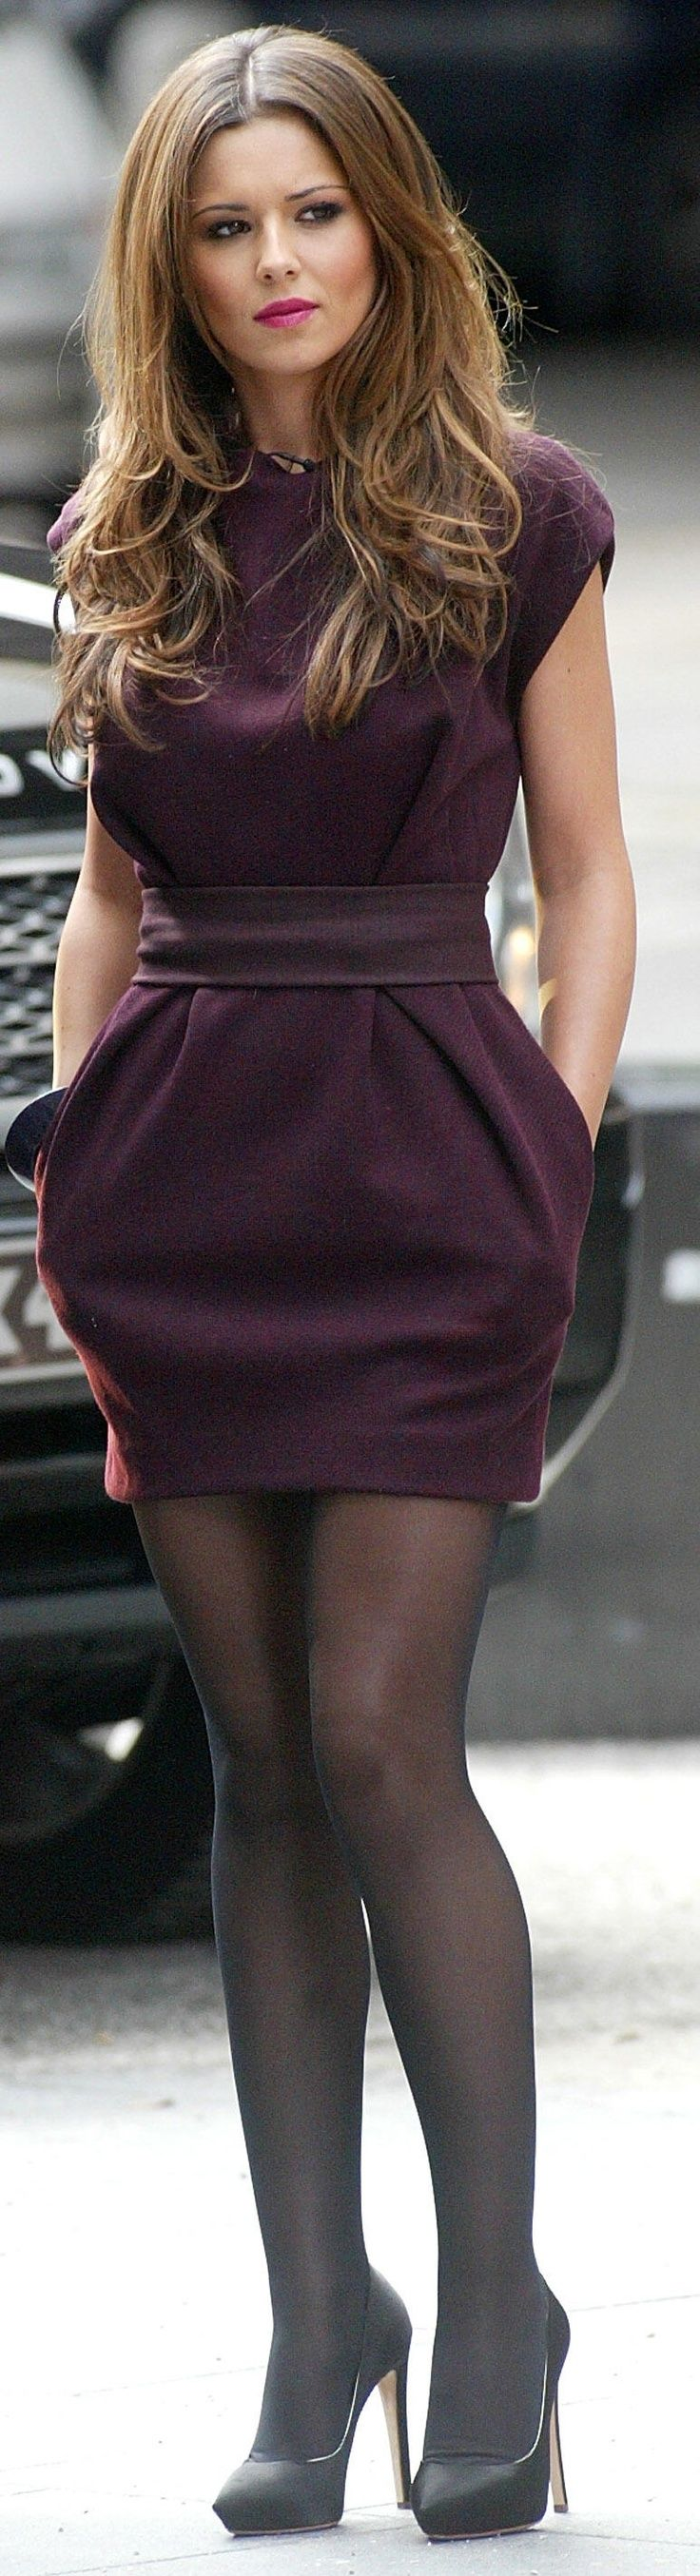 http://www.trendzystreet.com/clothing/dresses - ♥ Cute dress ~ great hair  LOVE This Dress!!!: Girl, Fashion Style, Cute Dresses, Outfit, Cheryl Cole, Pantyhose, Hair Color, Plum Dresses